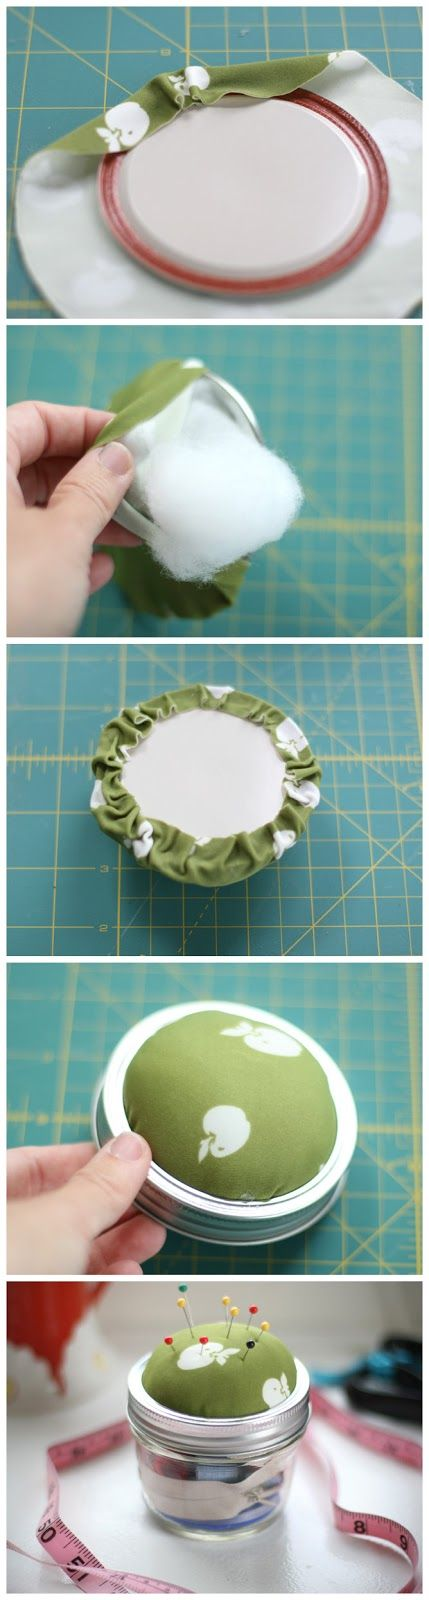 DIY: Mason Jar Sewing Kit